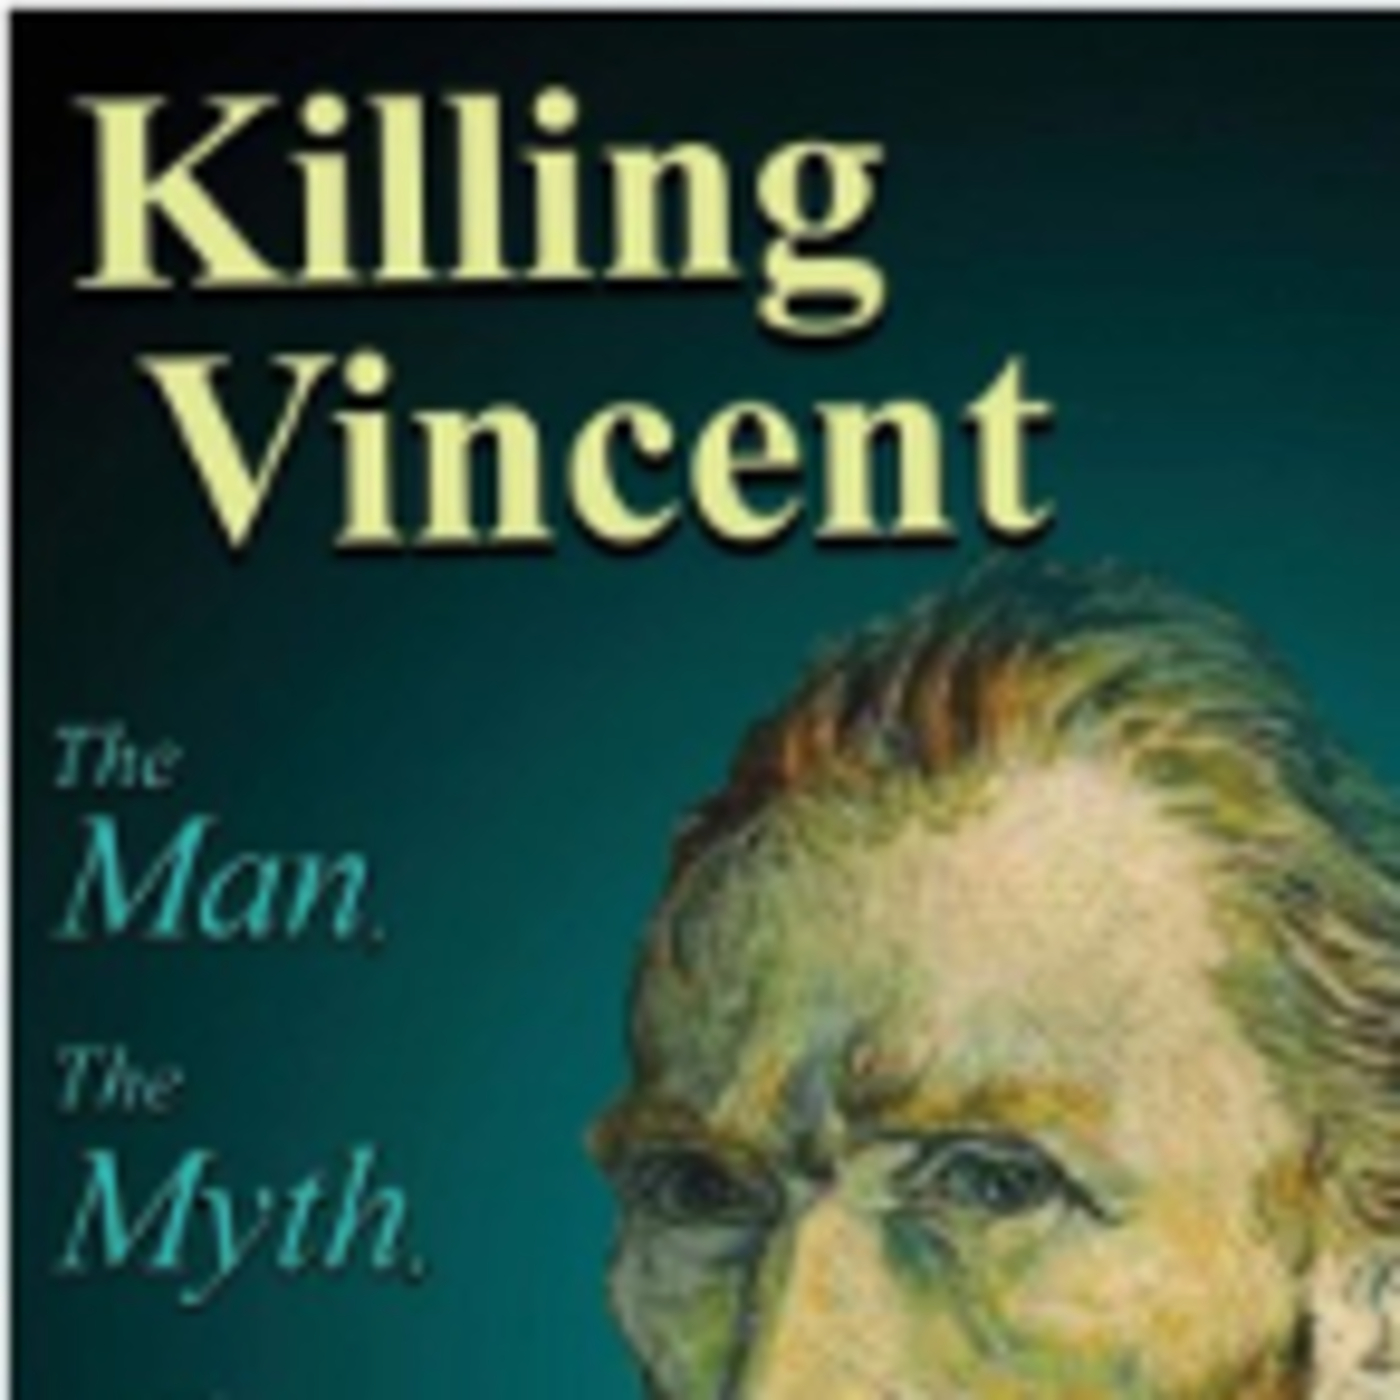 Killing Vincent, by author I. Kaufman Arenberg MD